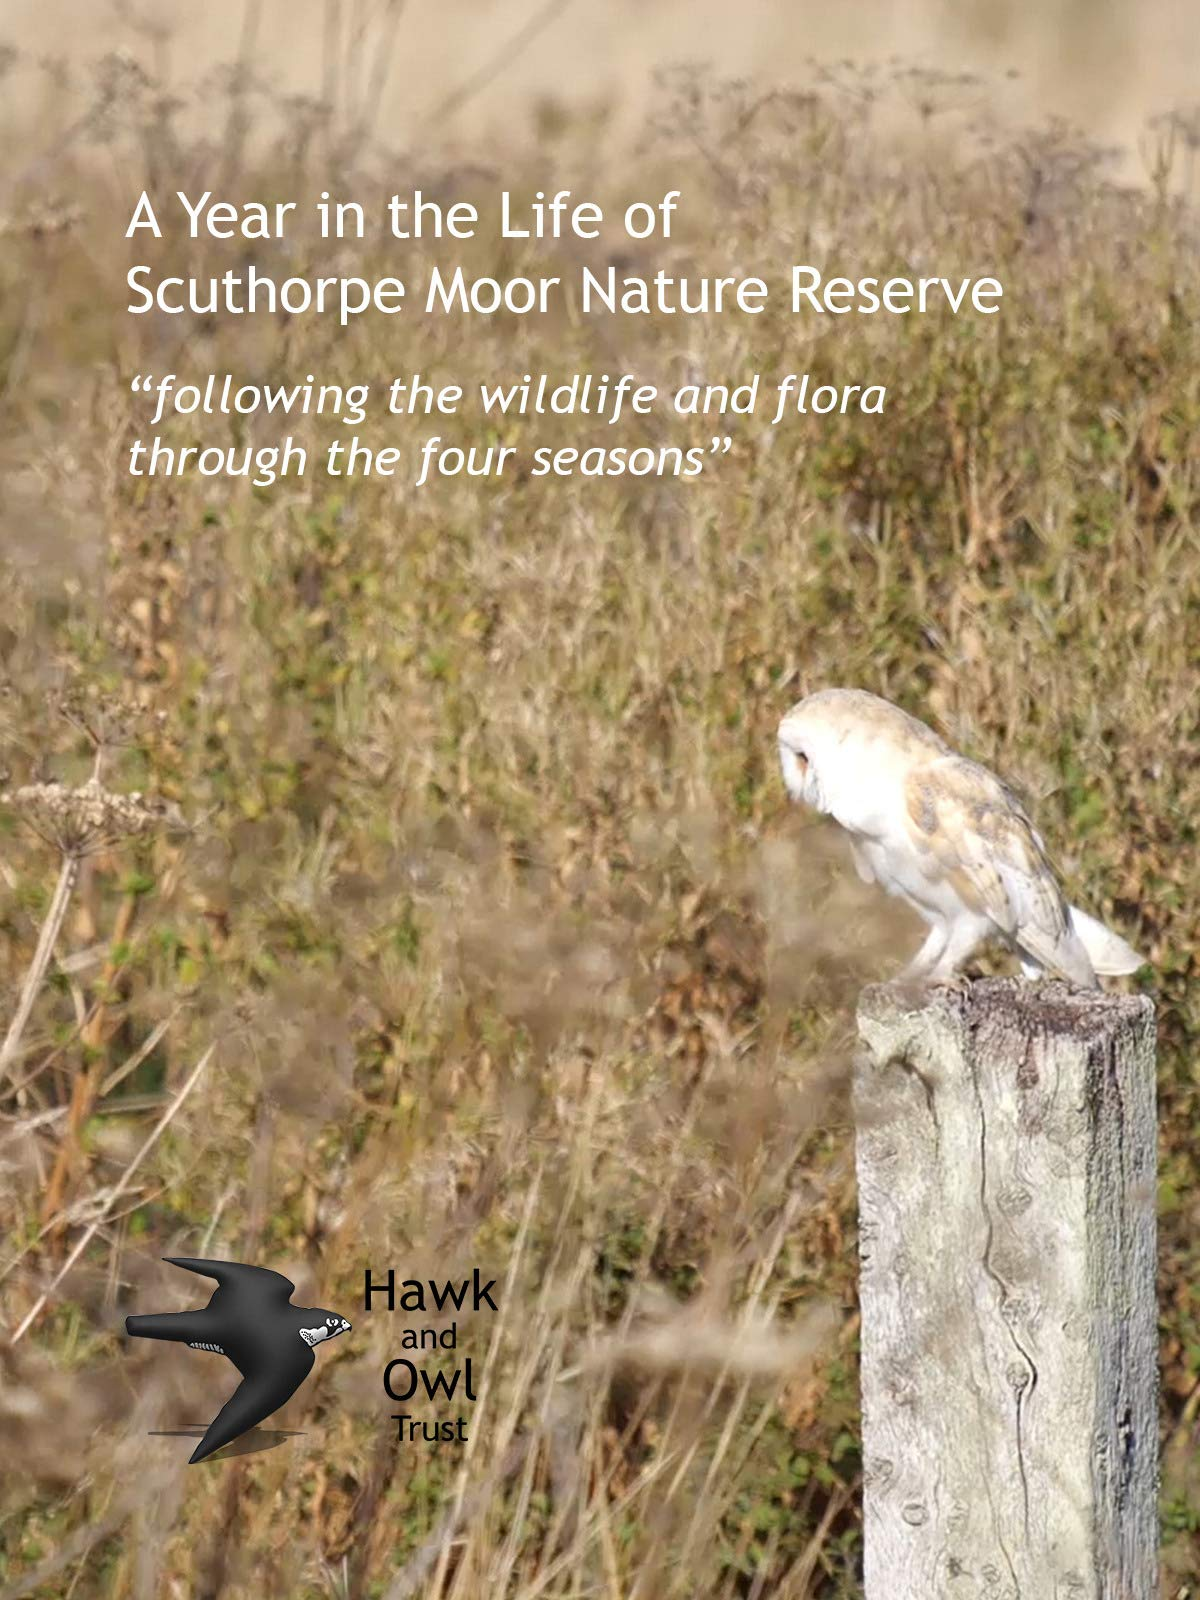 A Year in the Life of Sculthorpe Moor Nature Reserve